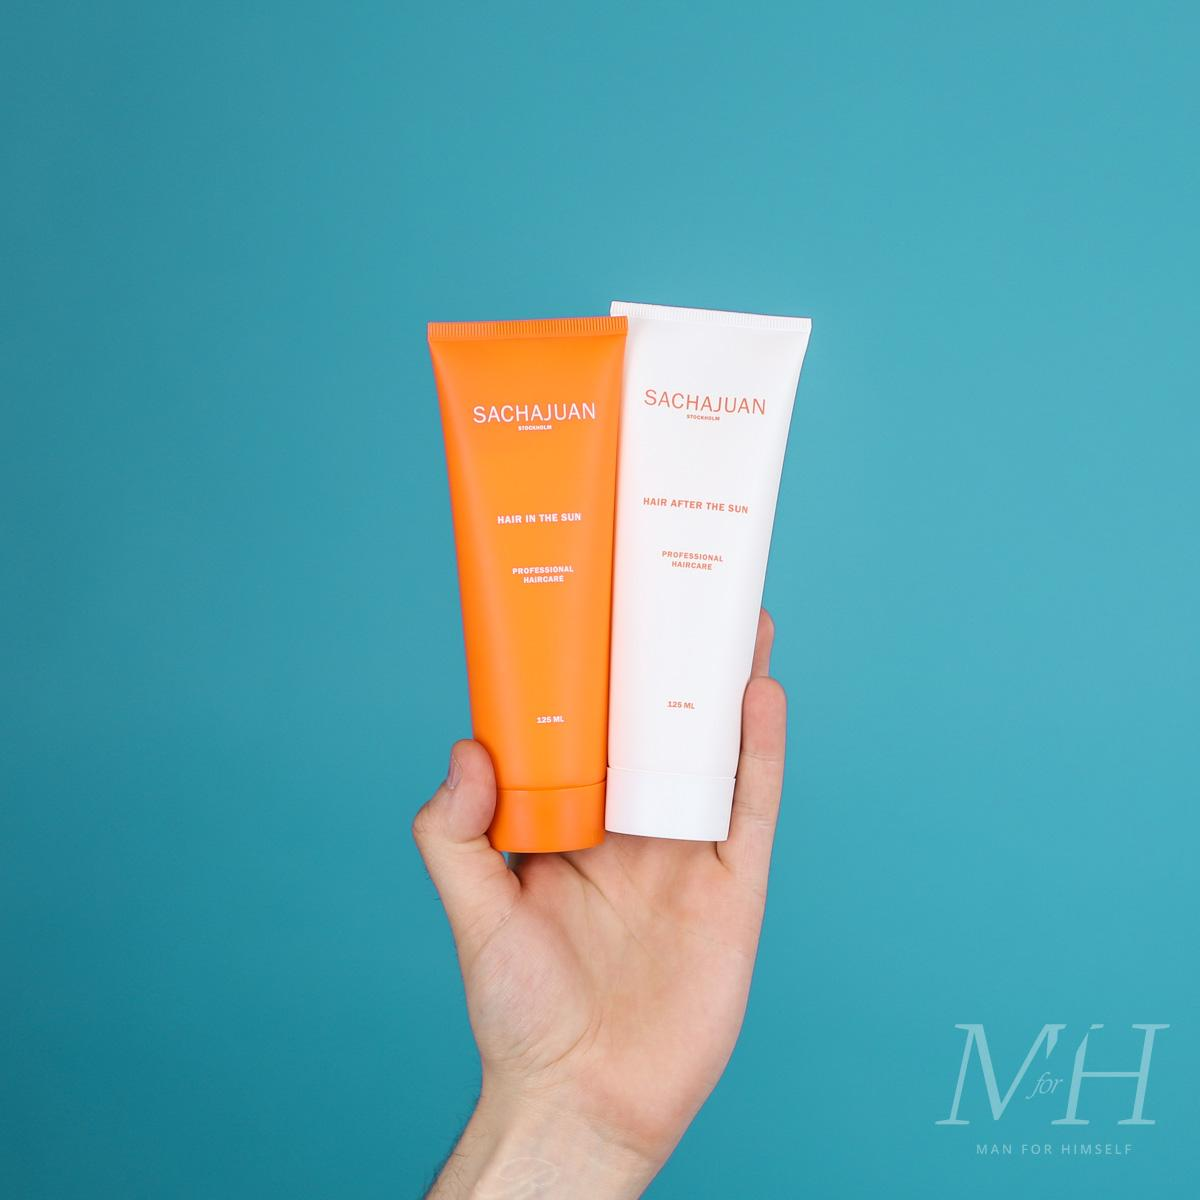 sachajuan-in-the-sun-product-review-man-for-himself